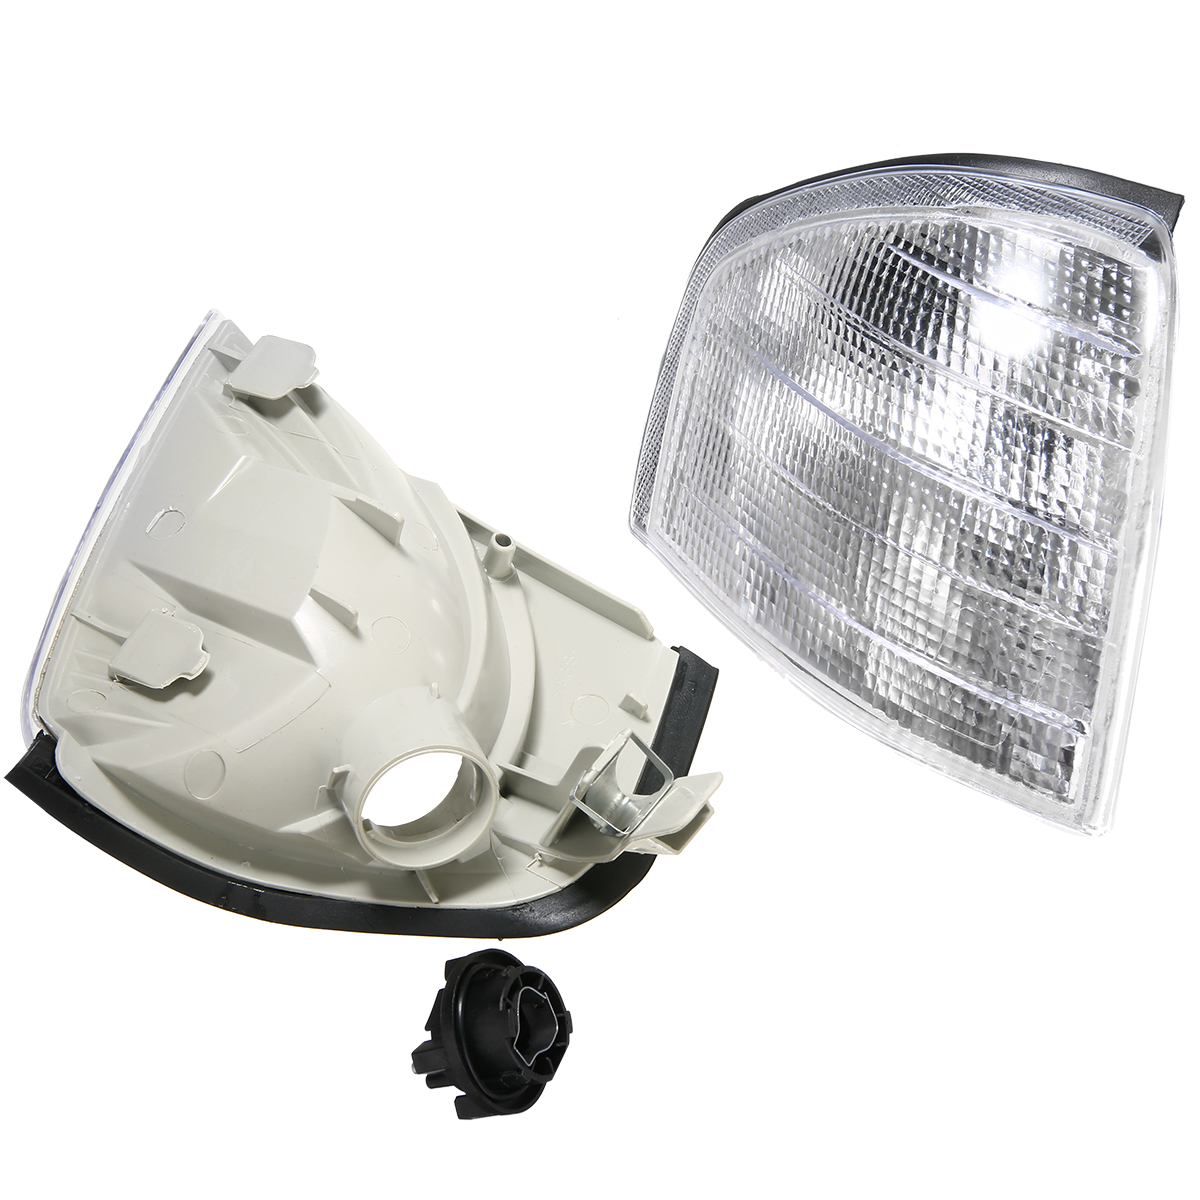 Image 2 - For Mercedes Benz C Class W202 1994 2000 1 Pair Clear Lens Turn Signal Corner Light Lamp Car Styling-in Signal Lamp from Automobiles & Motorcycles